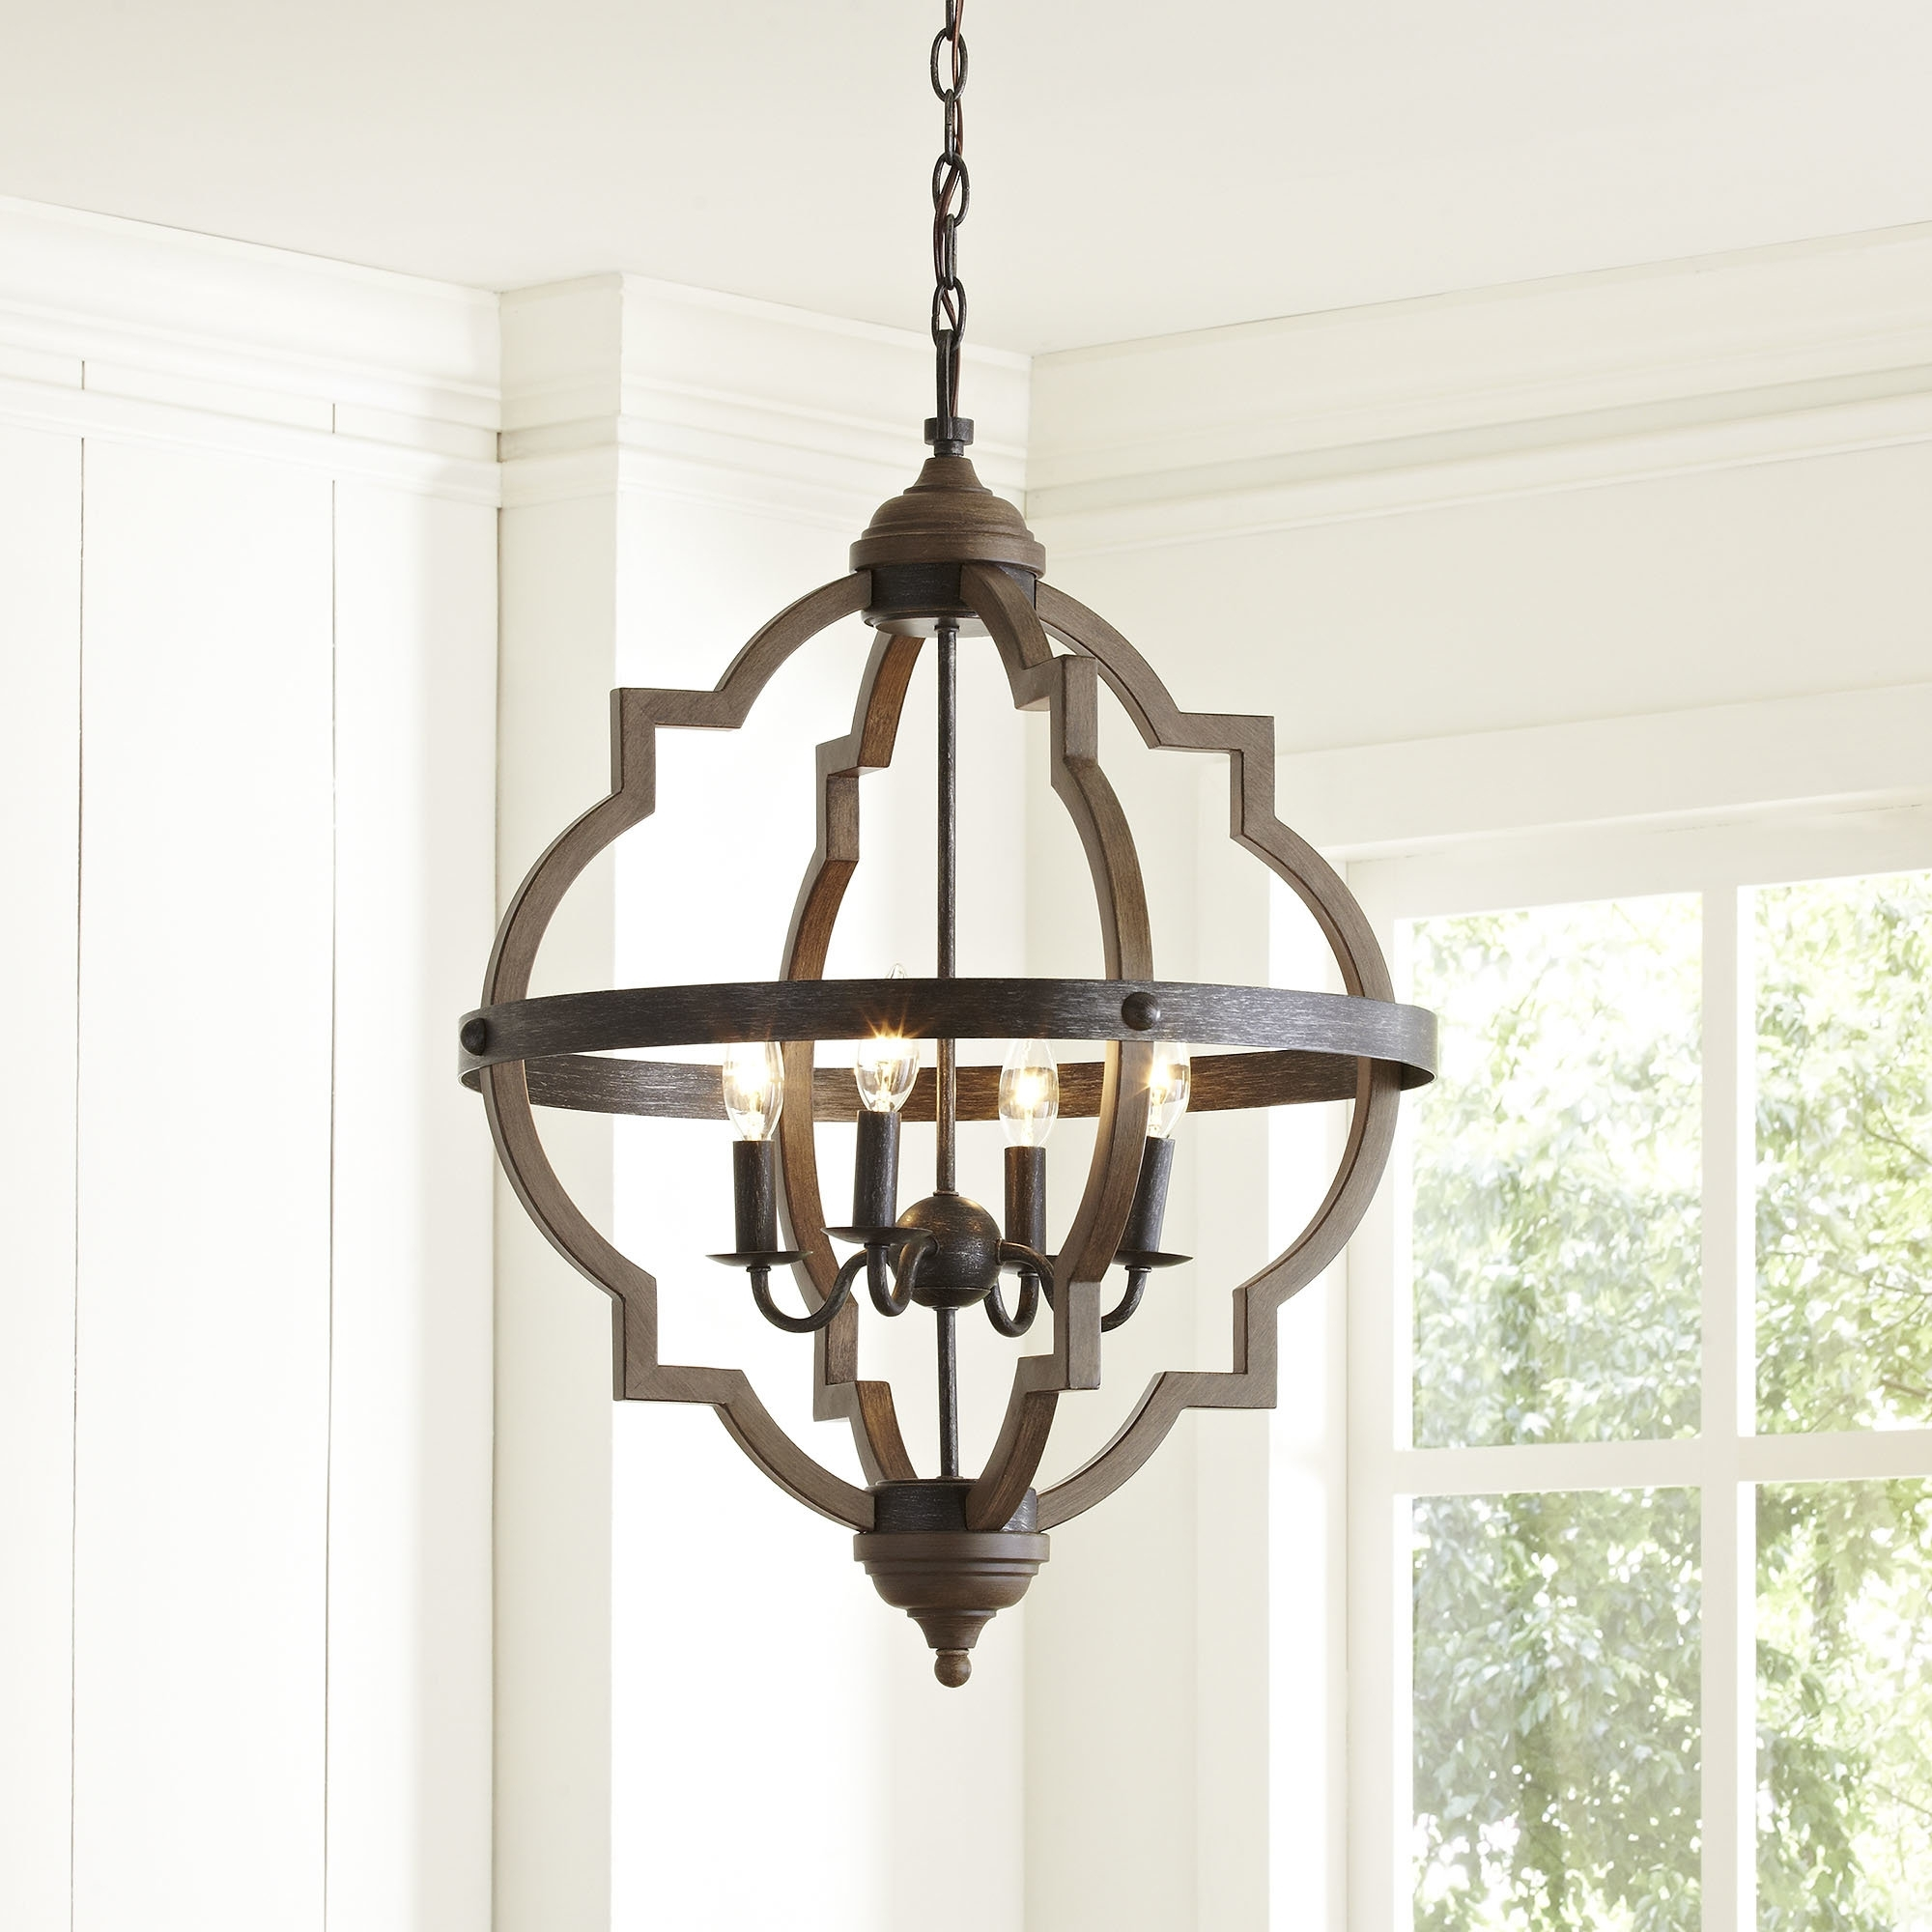 Preferred Wayfair Chandeliers In Stunning Design Ideas Wayfair Lighting Chandeliers Decoration You Ll (View 11 of 15)